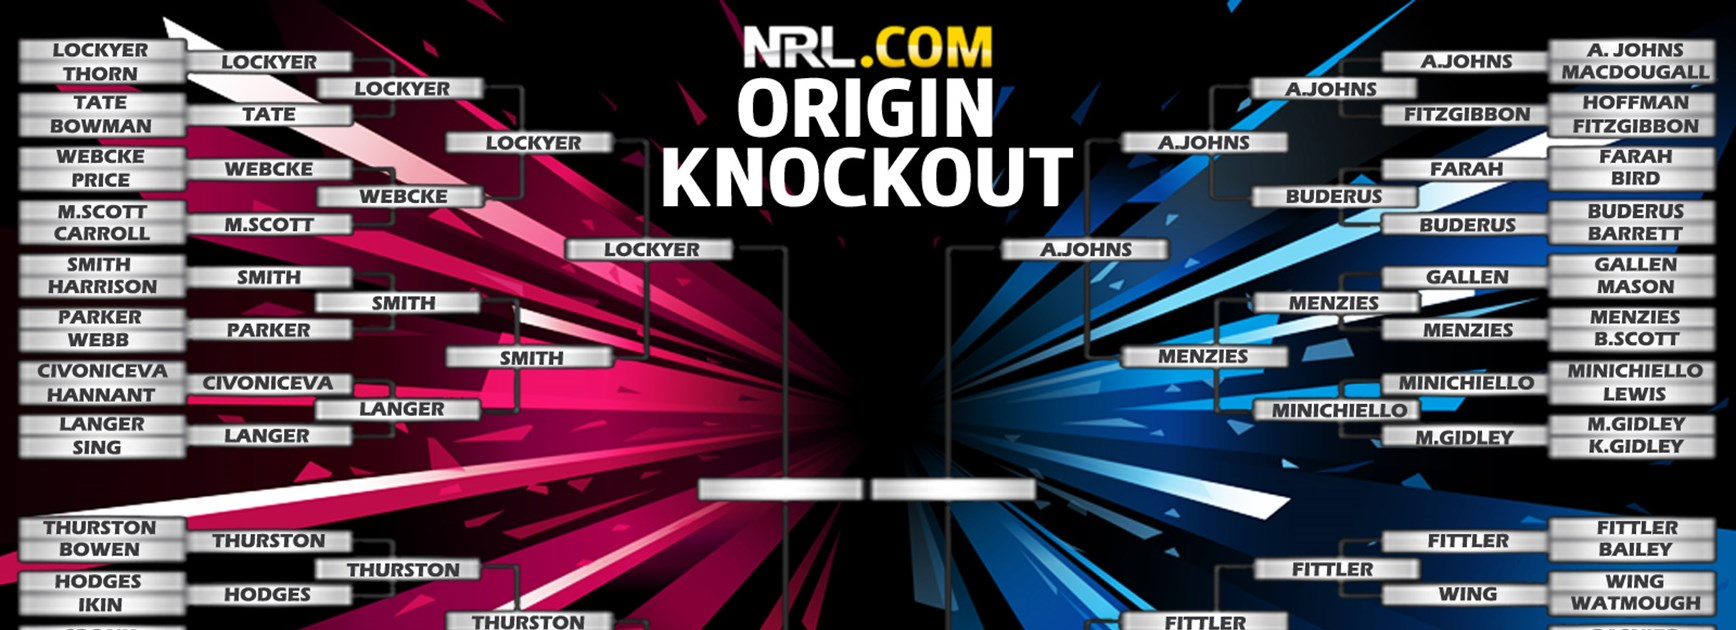 Just four players remain in NRL.com's Origin Knockout poll.